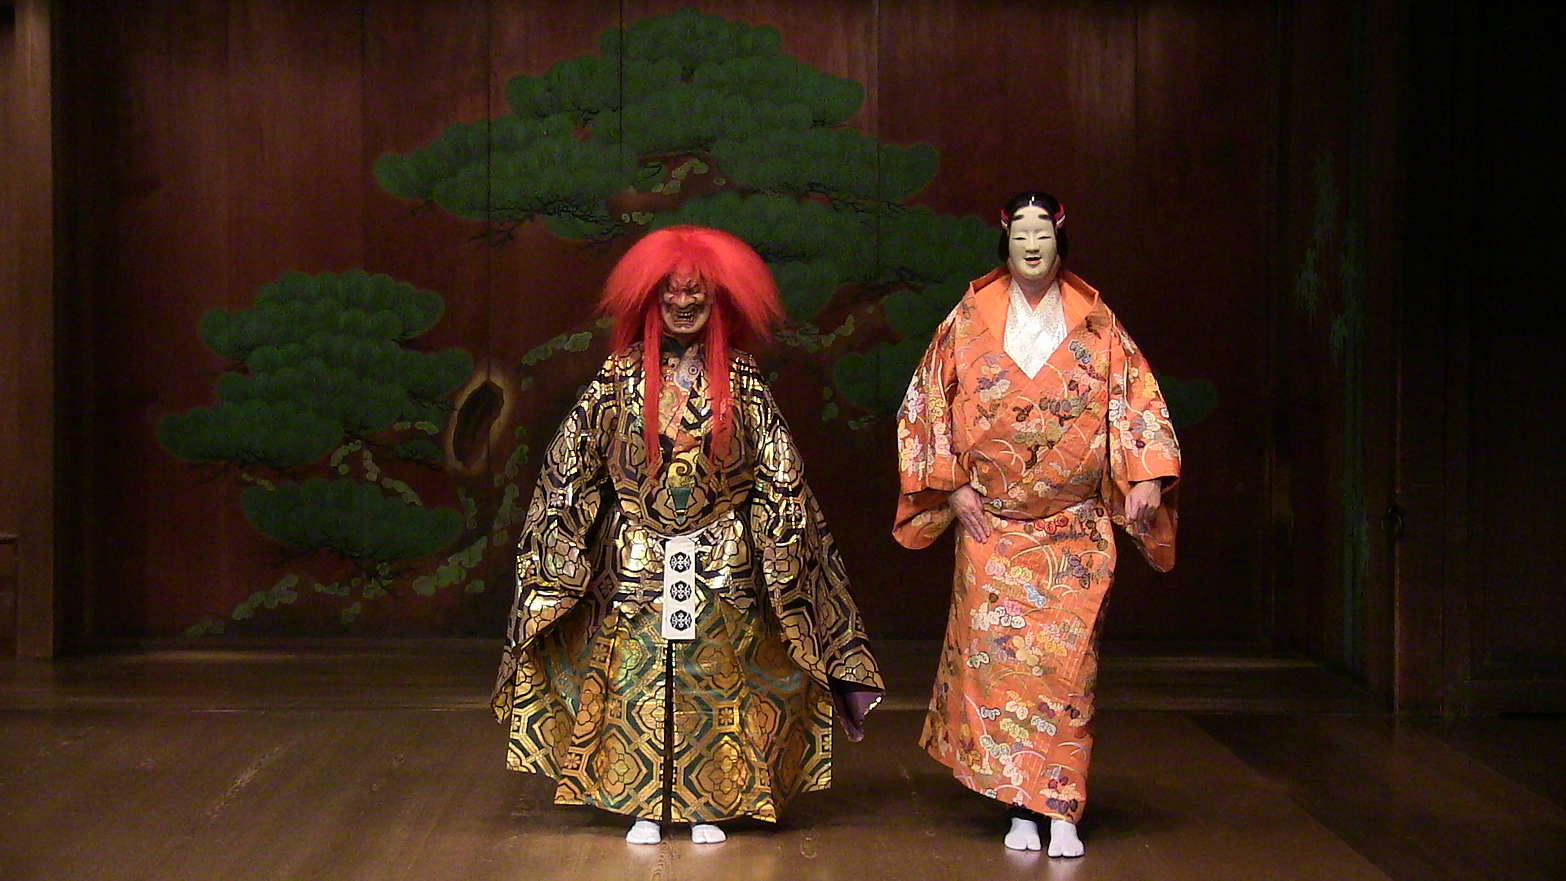 A scene from a play: In the centre of the stage two actors wearing colorful kimonos and Japanese masks